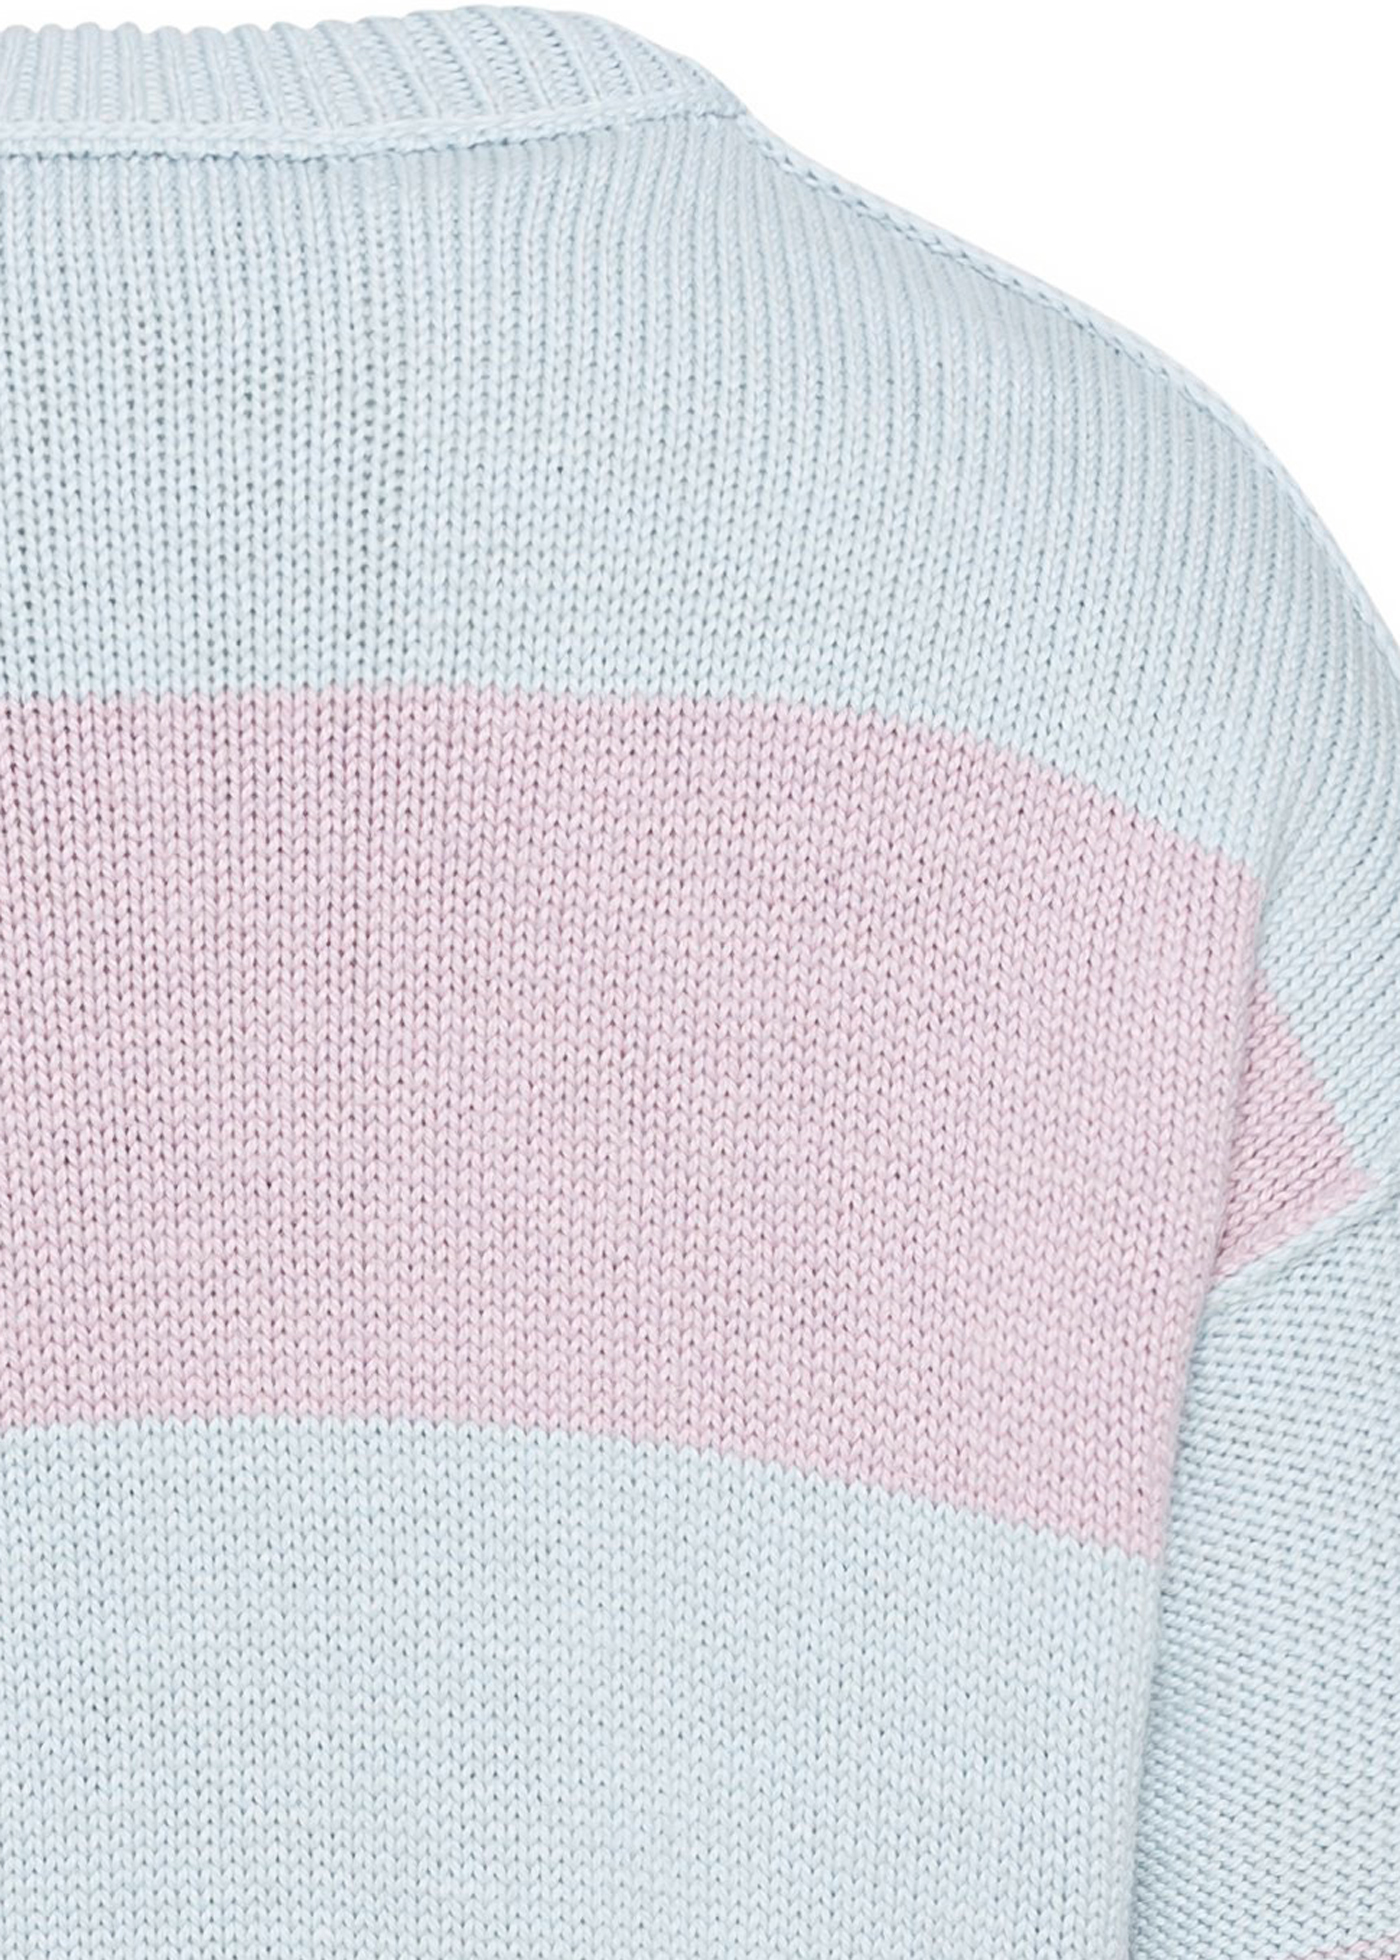 PXP STRIPY SWEATER image number 3